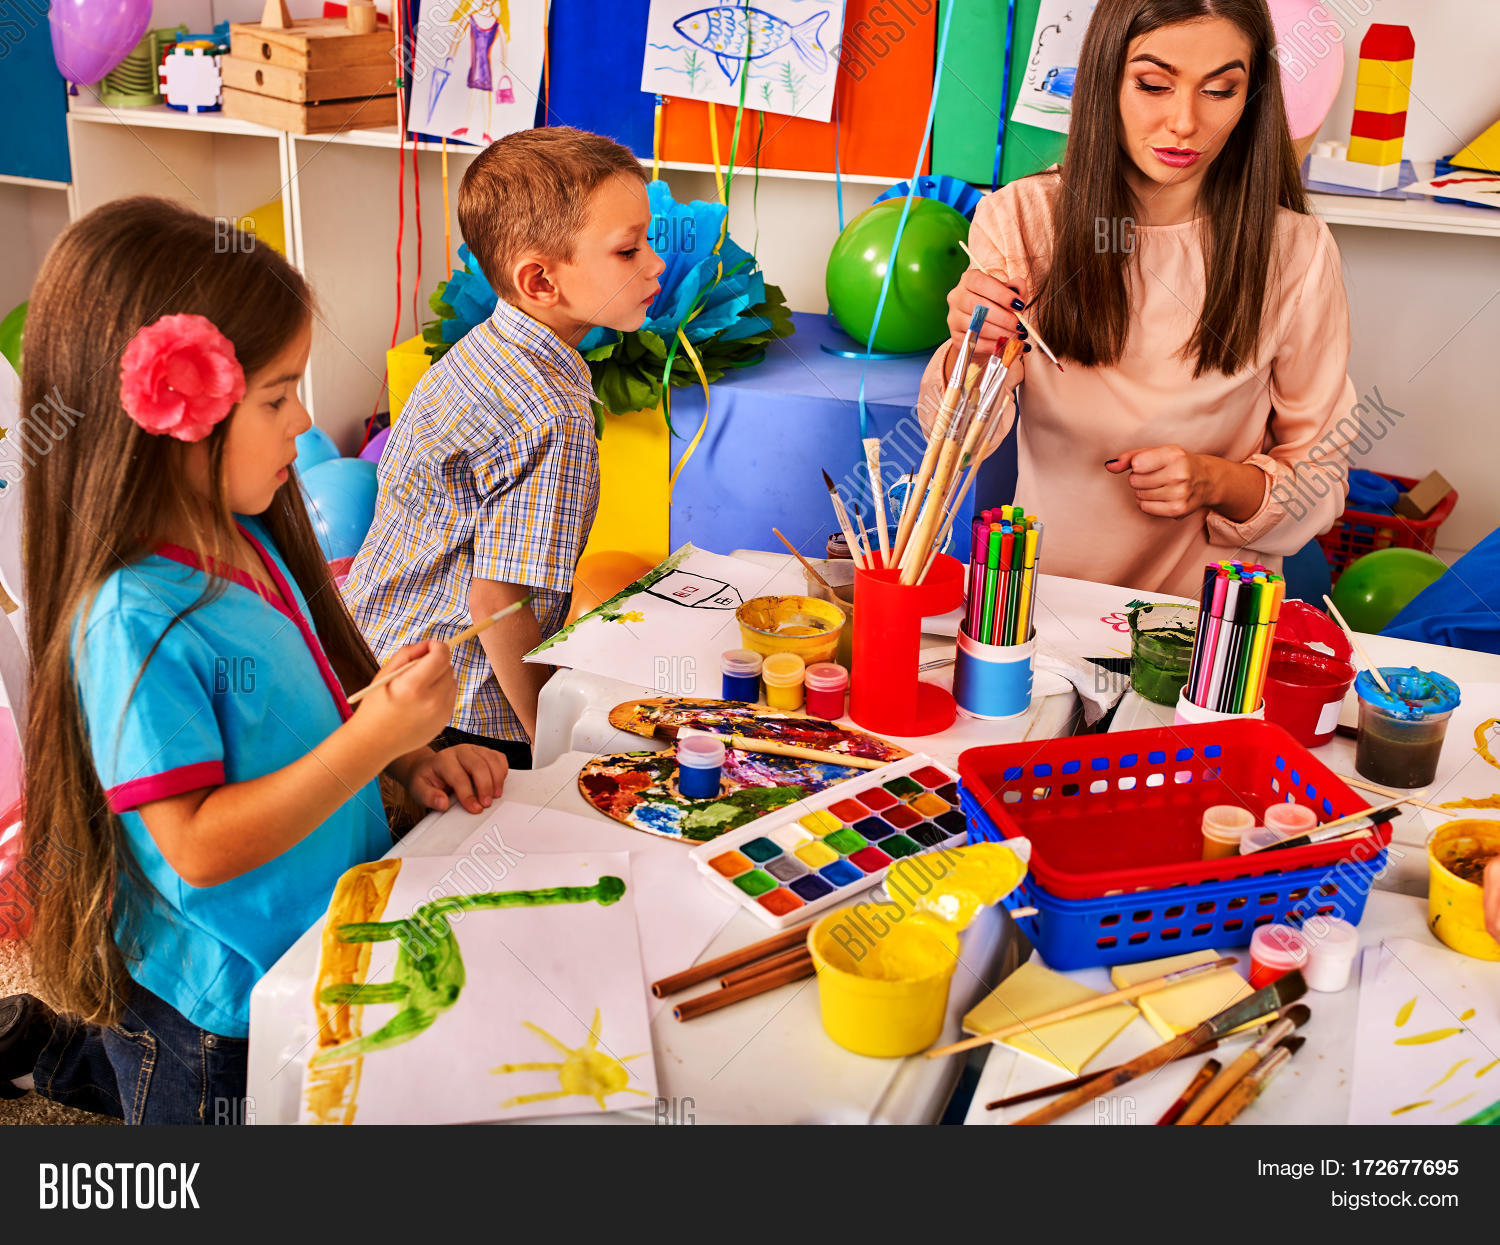 Children painting drawing kids club image photo bigstock for Craft work for class 3